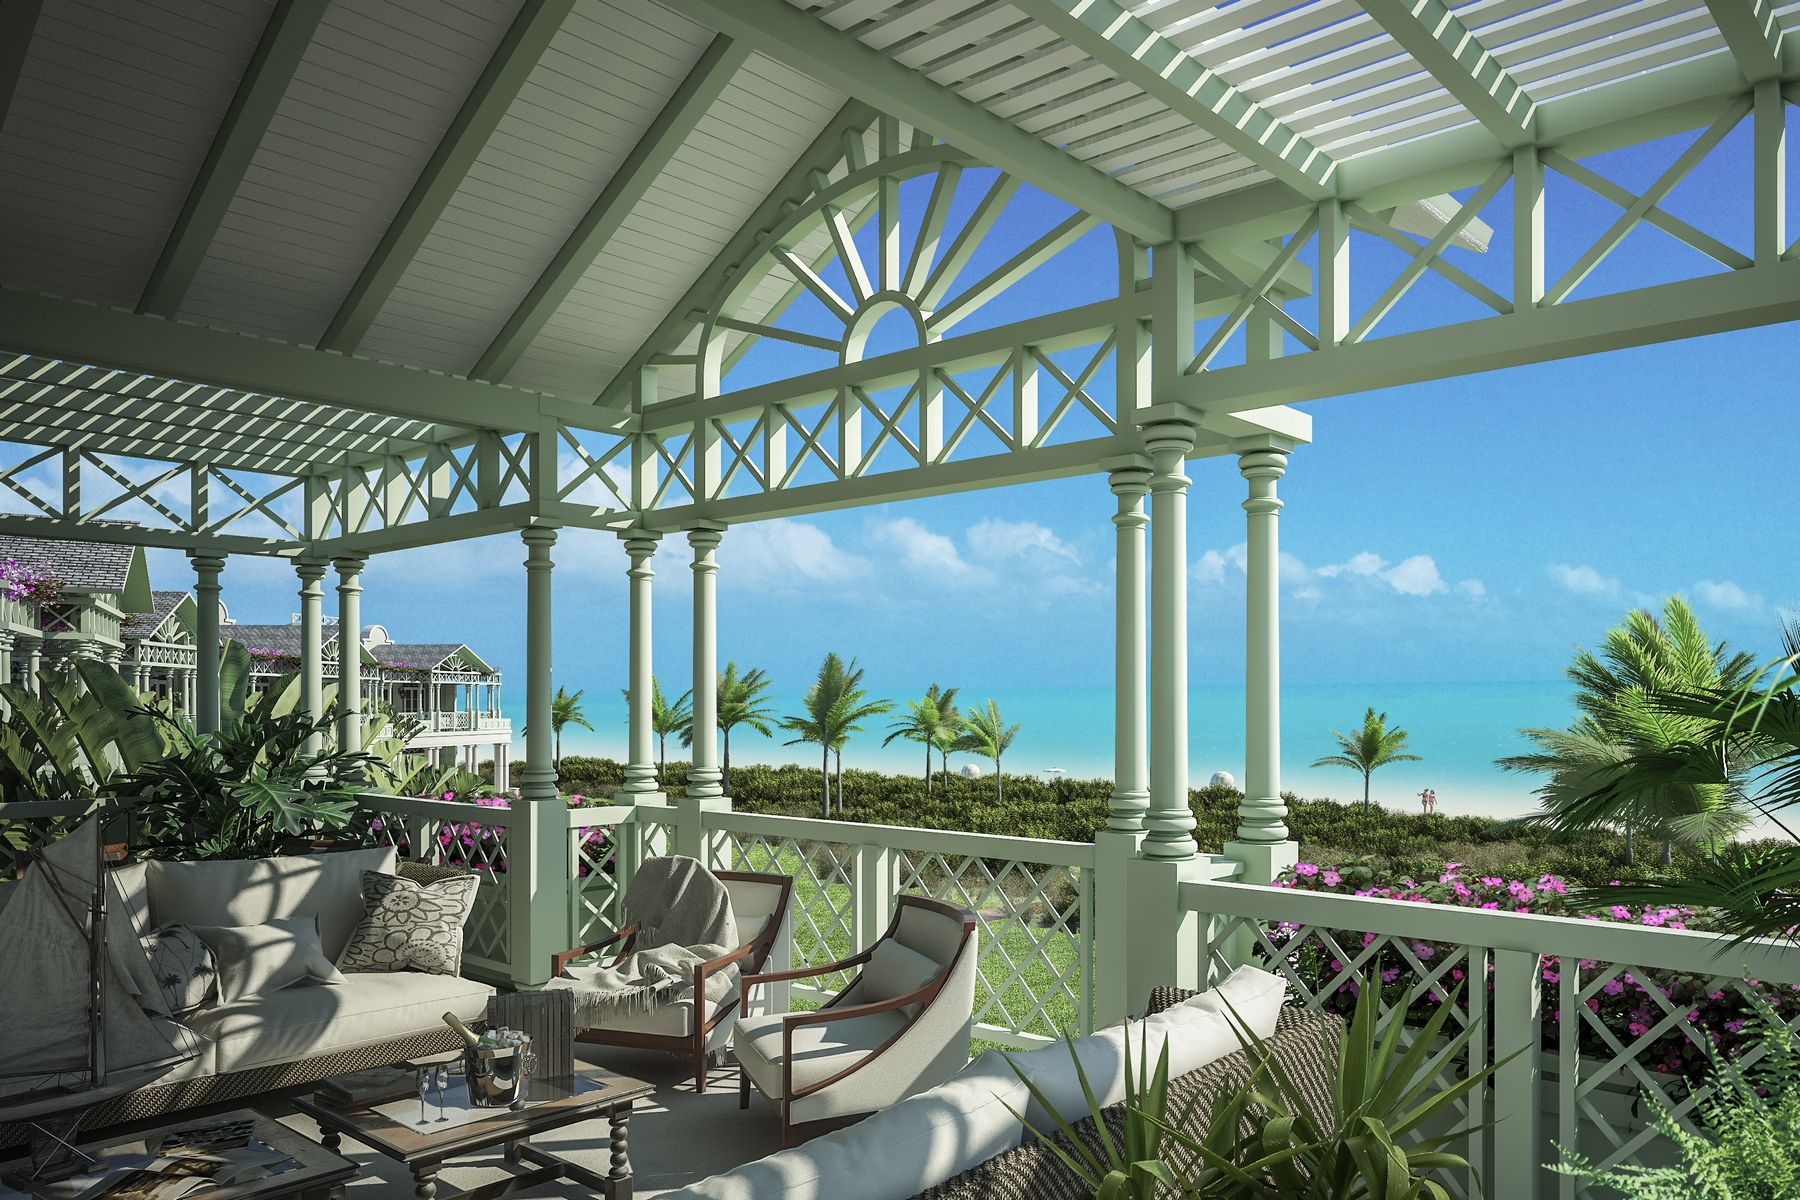 Single Family Home for Sale at The Shore Club ~ Villa 5 The Shore Club, Long Bay, Turks And Caicos Islands